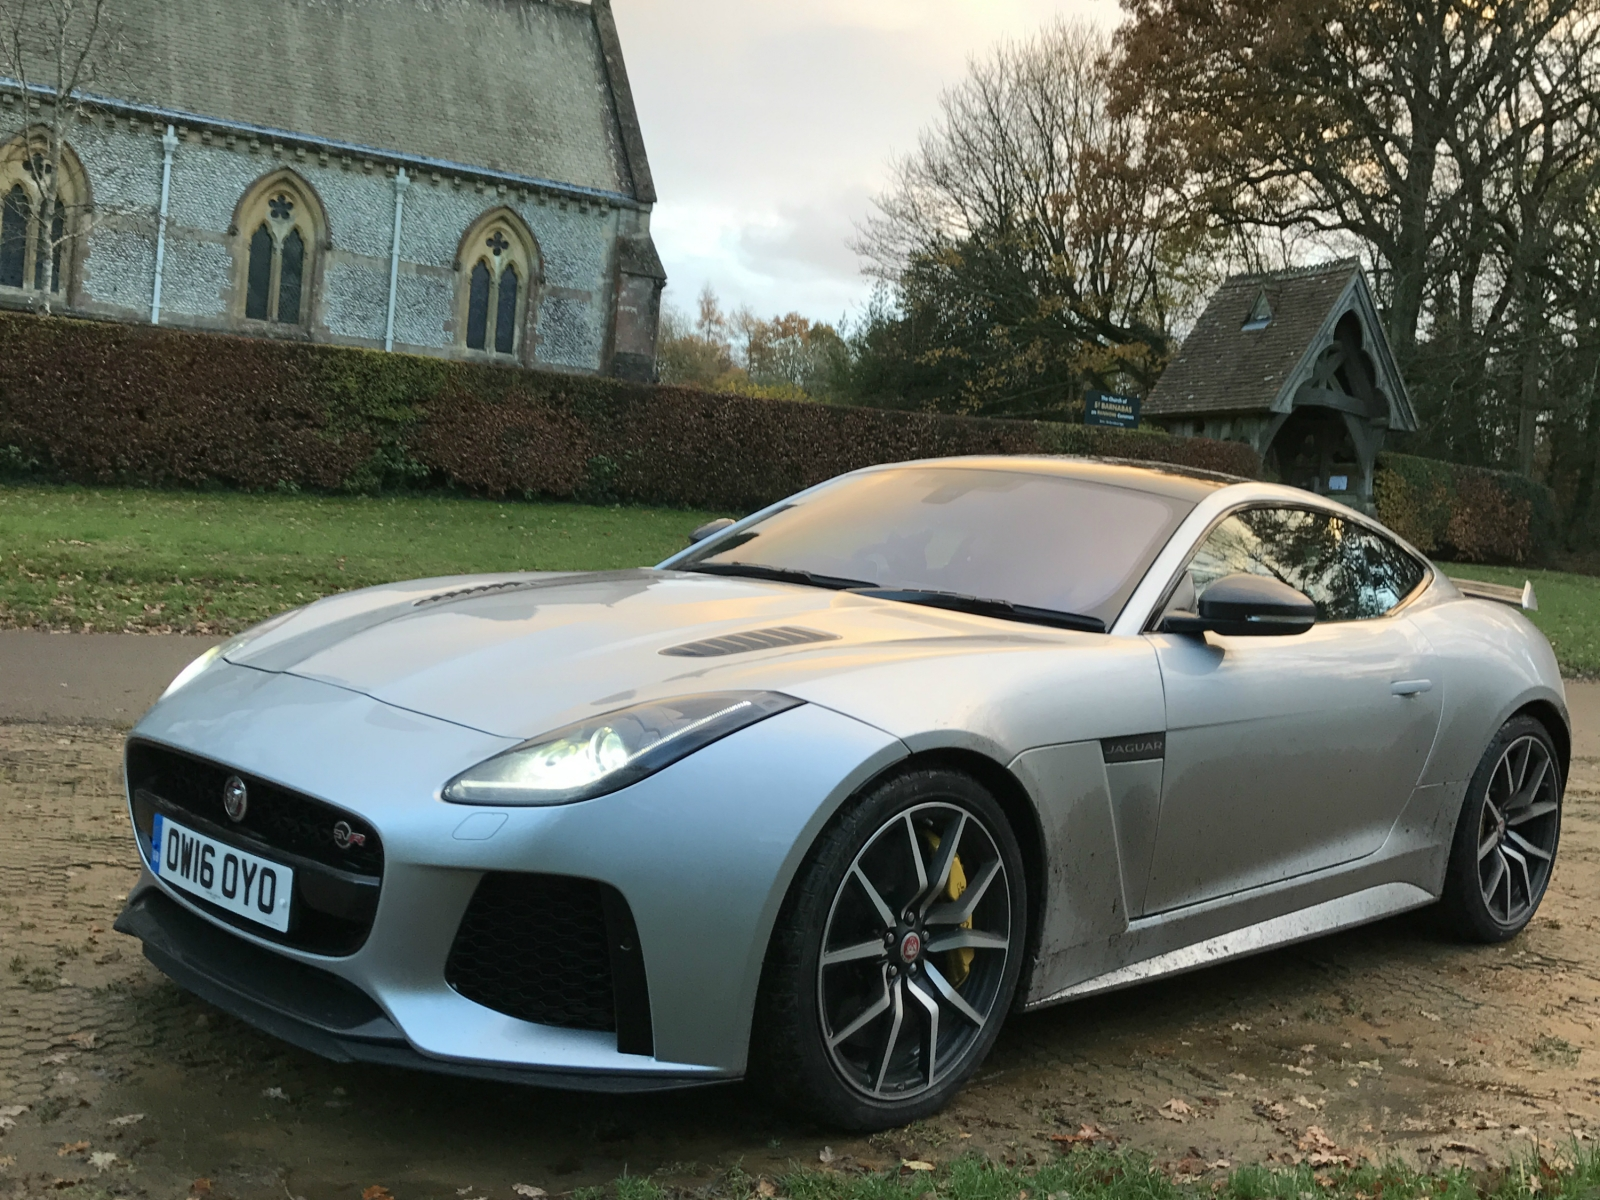 jaguar f type svr coupe review a supercar for all seasons. Black Bedroom Furniture Sets. Home Design Ideas